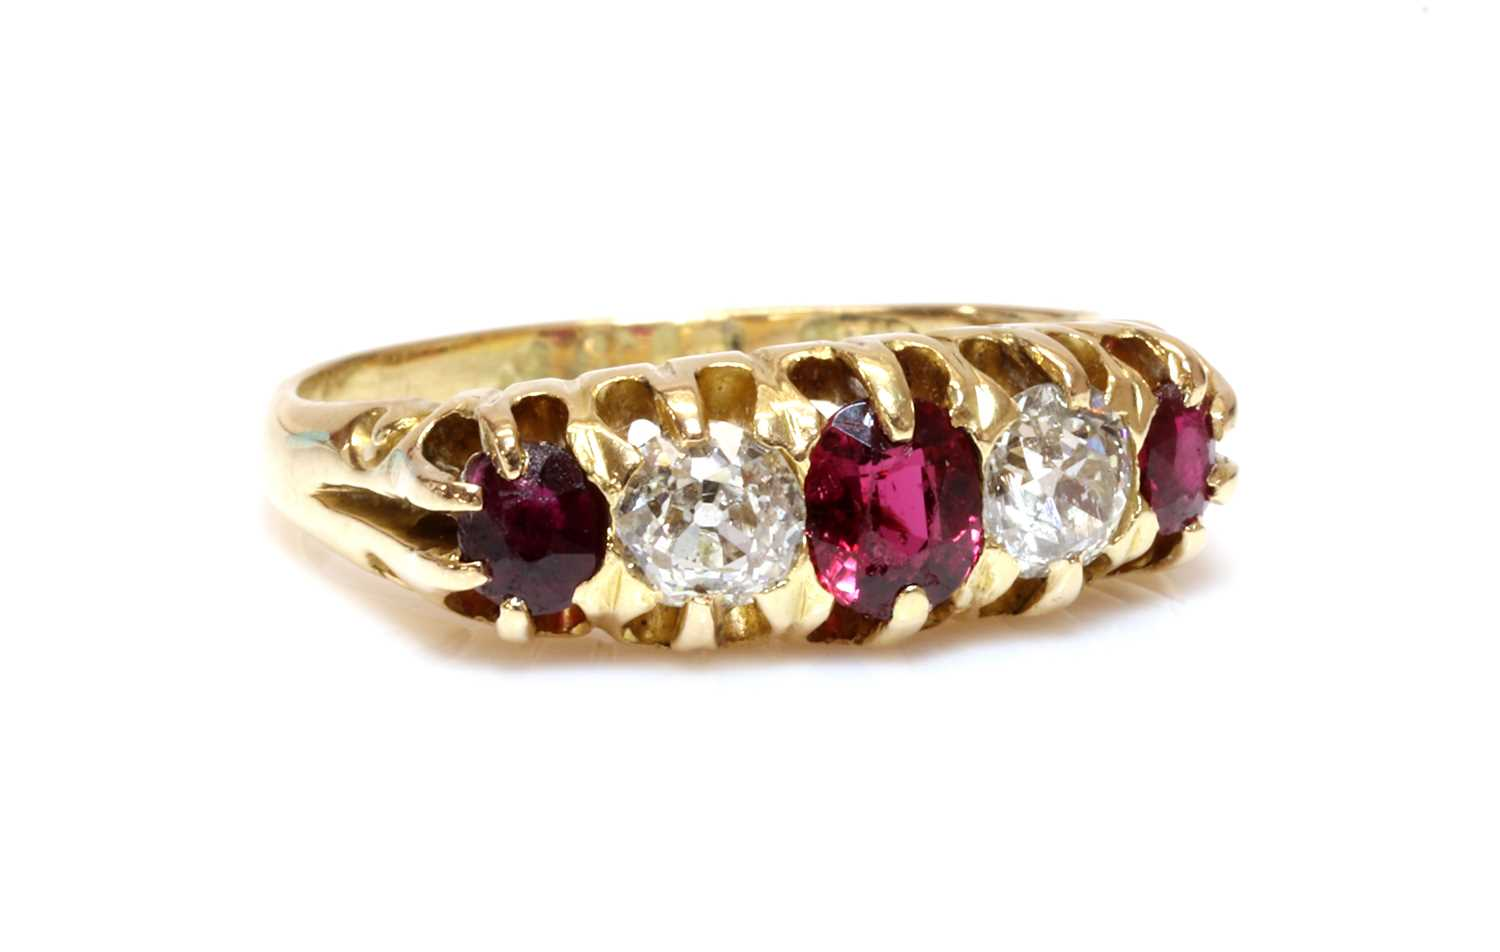 Lot 44 - An 18ct gold red spinel, ruby and diamond boat shaped ring, c.1900